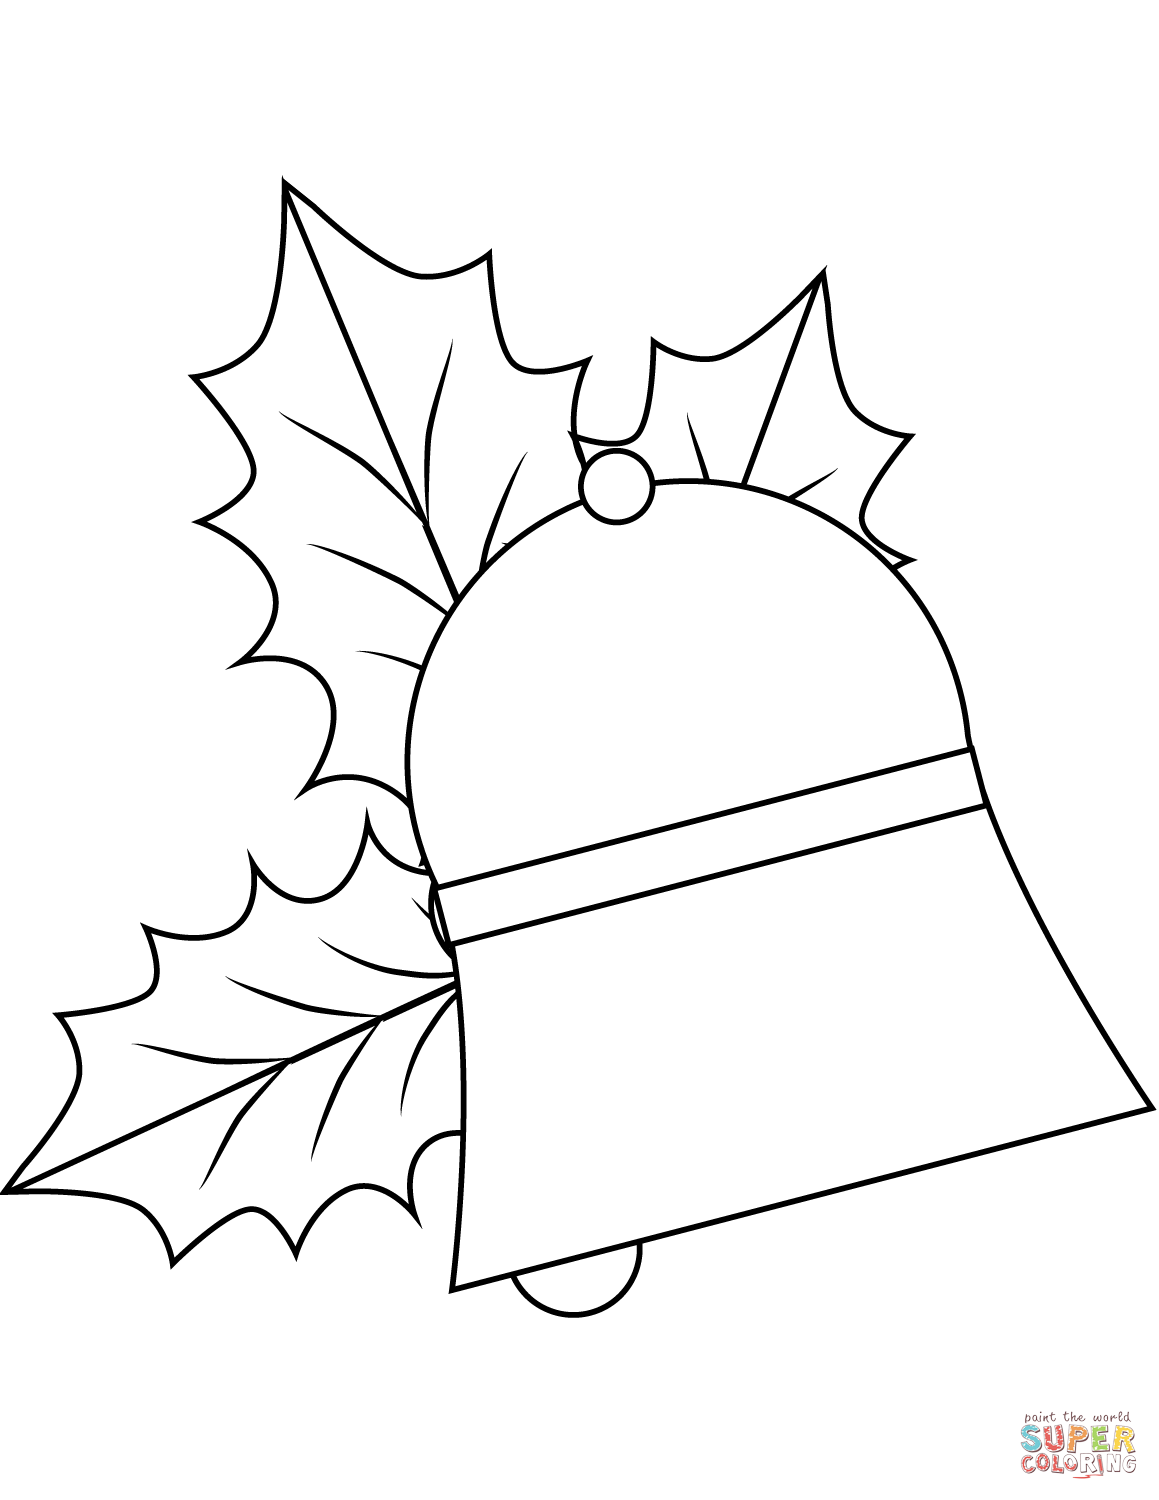 Christmas Bell Coloring Page From Jingle Bells Category Select From 28034 Printable Crafts O Coloring Pages Christmas Bells Printable Christmas Coloring Pages